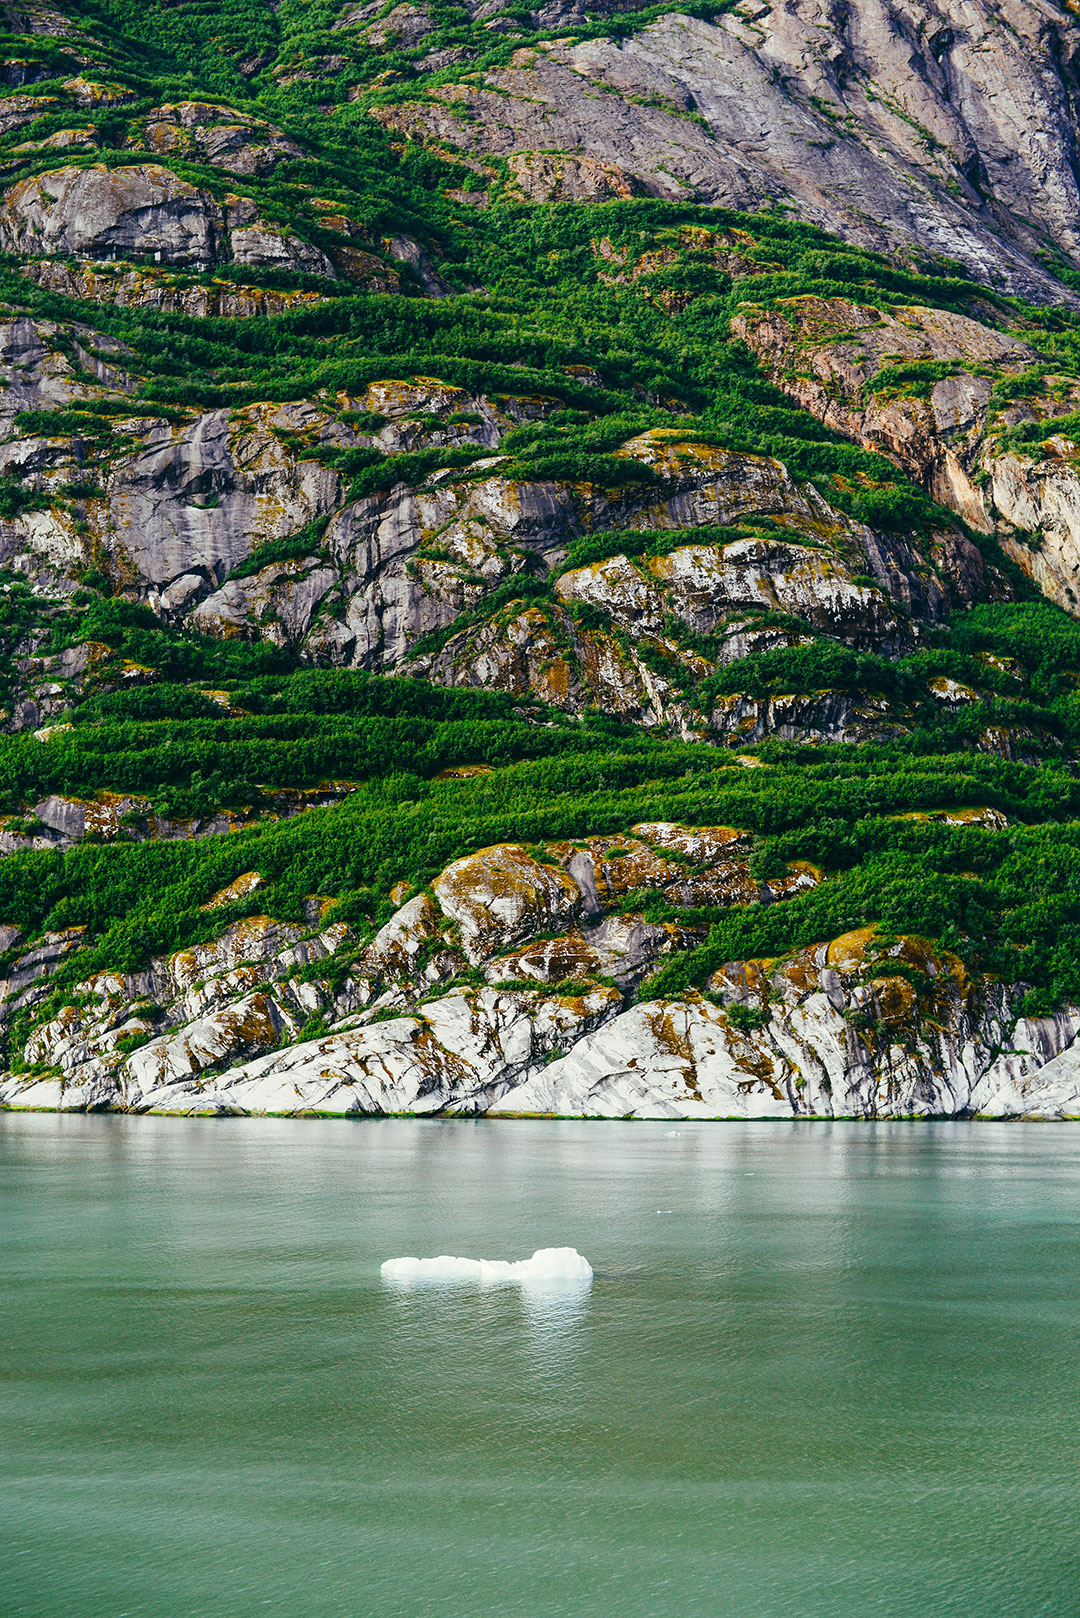 Tracy Arm Fjord + Dawes Glacier | The Style Scribe